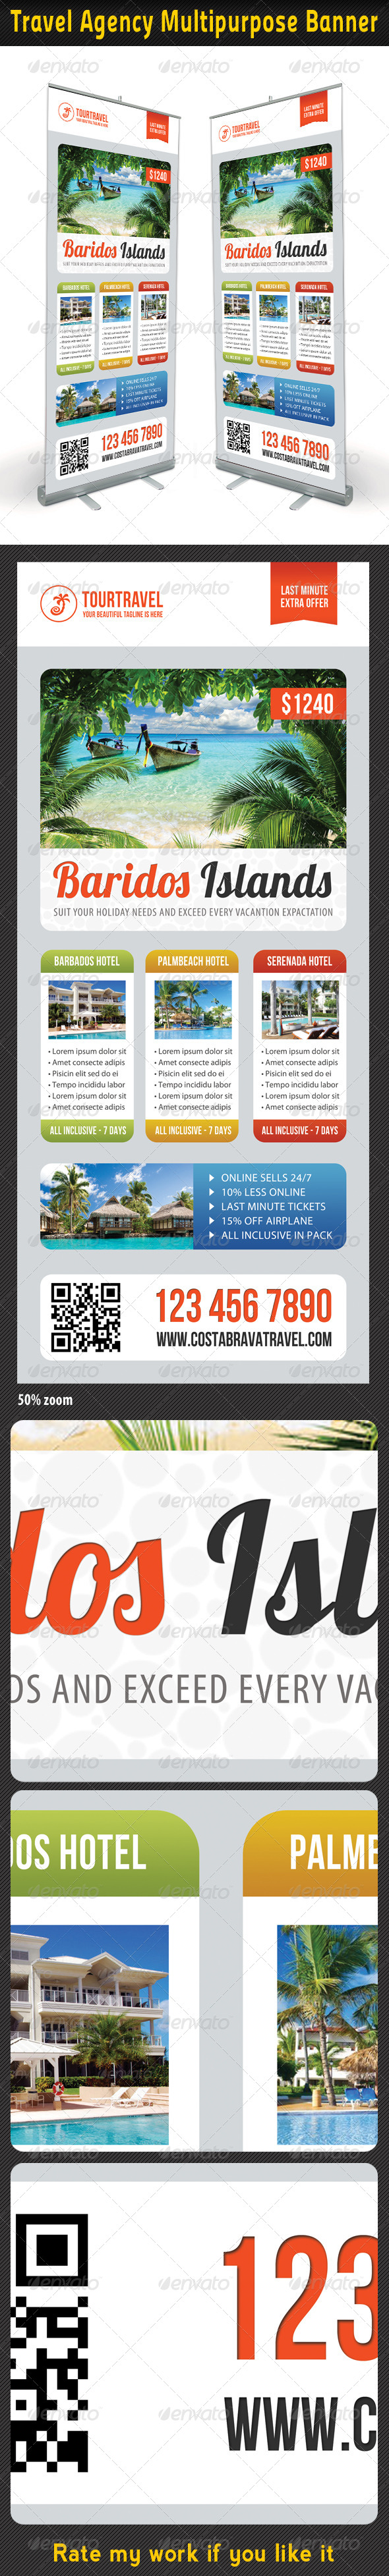 Travel Agency Banner Template 07 - Signage Print Templates